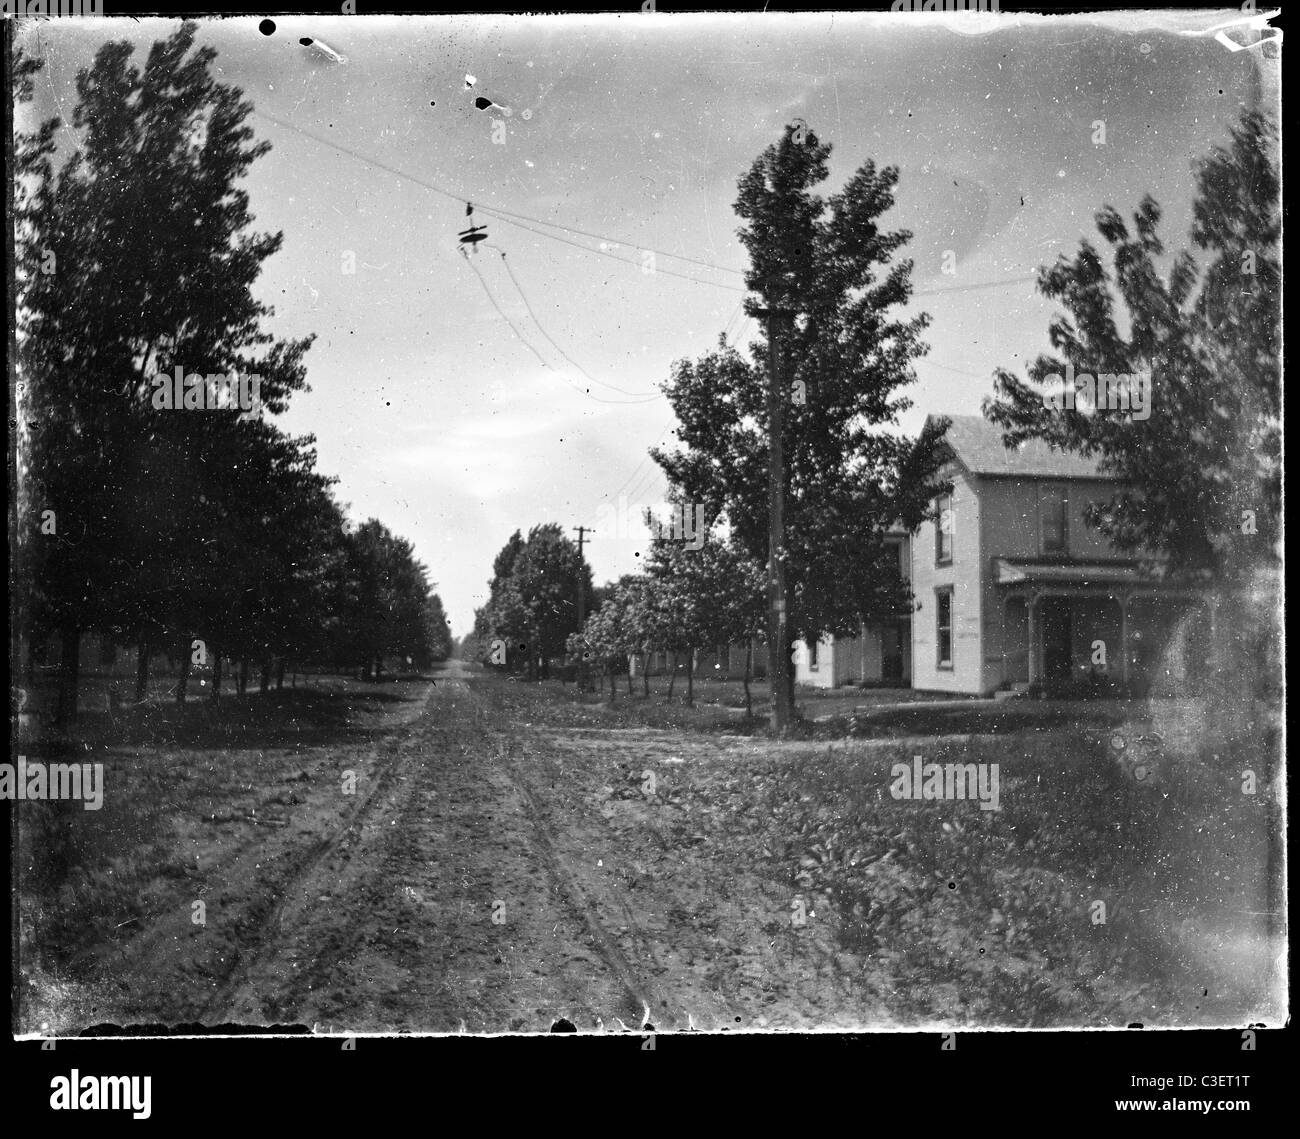 empty street with horse and buggy tracks pre-automobile main small town avenue 19th century 1890s - Stock Image